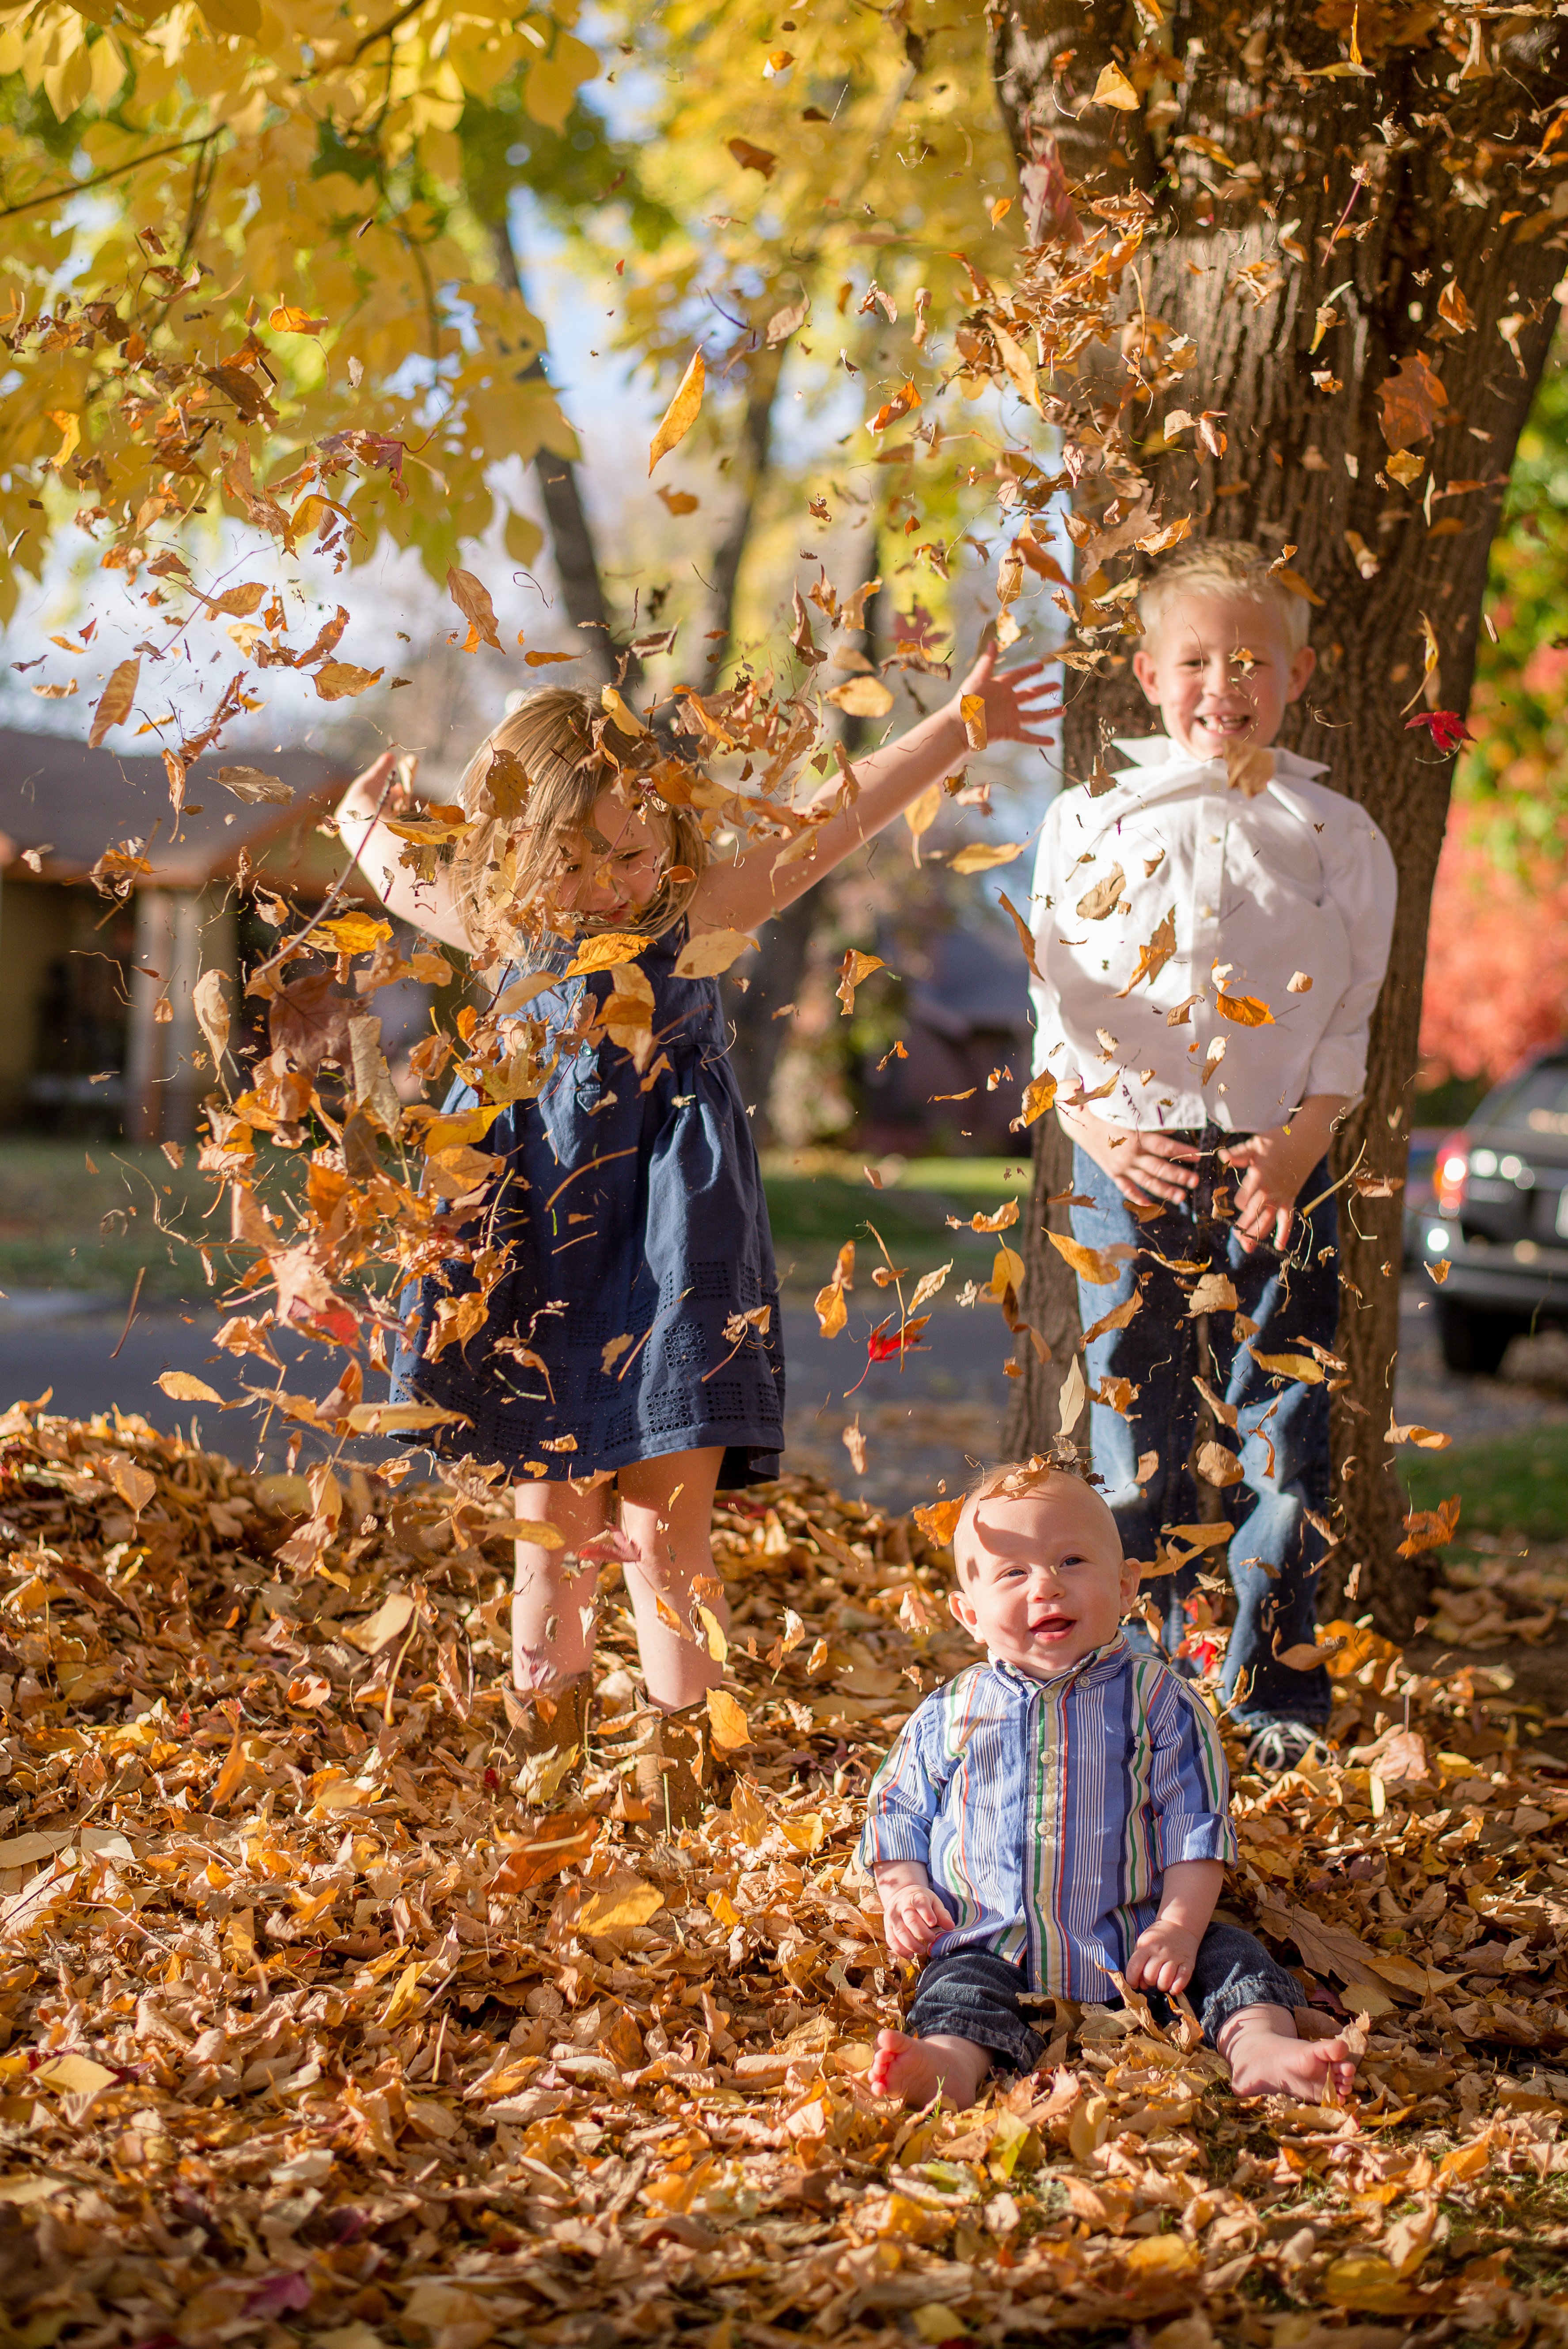 Girl, boy and baby throw fall leaves